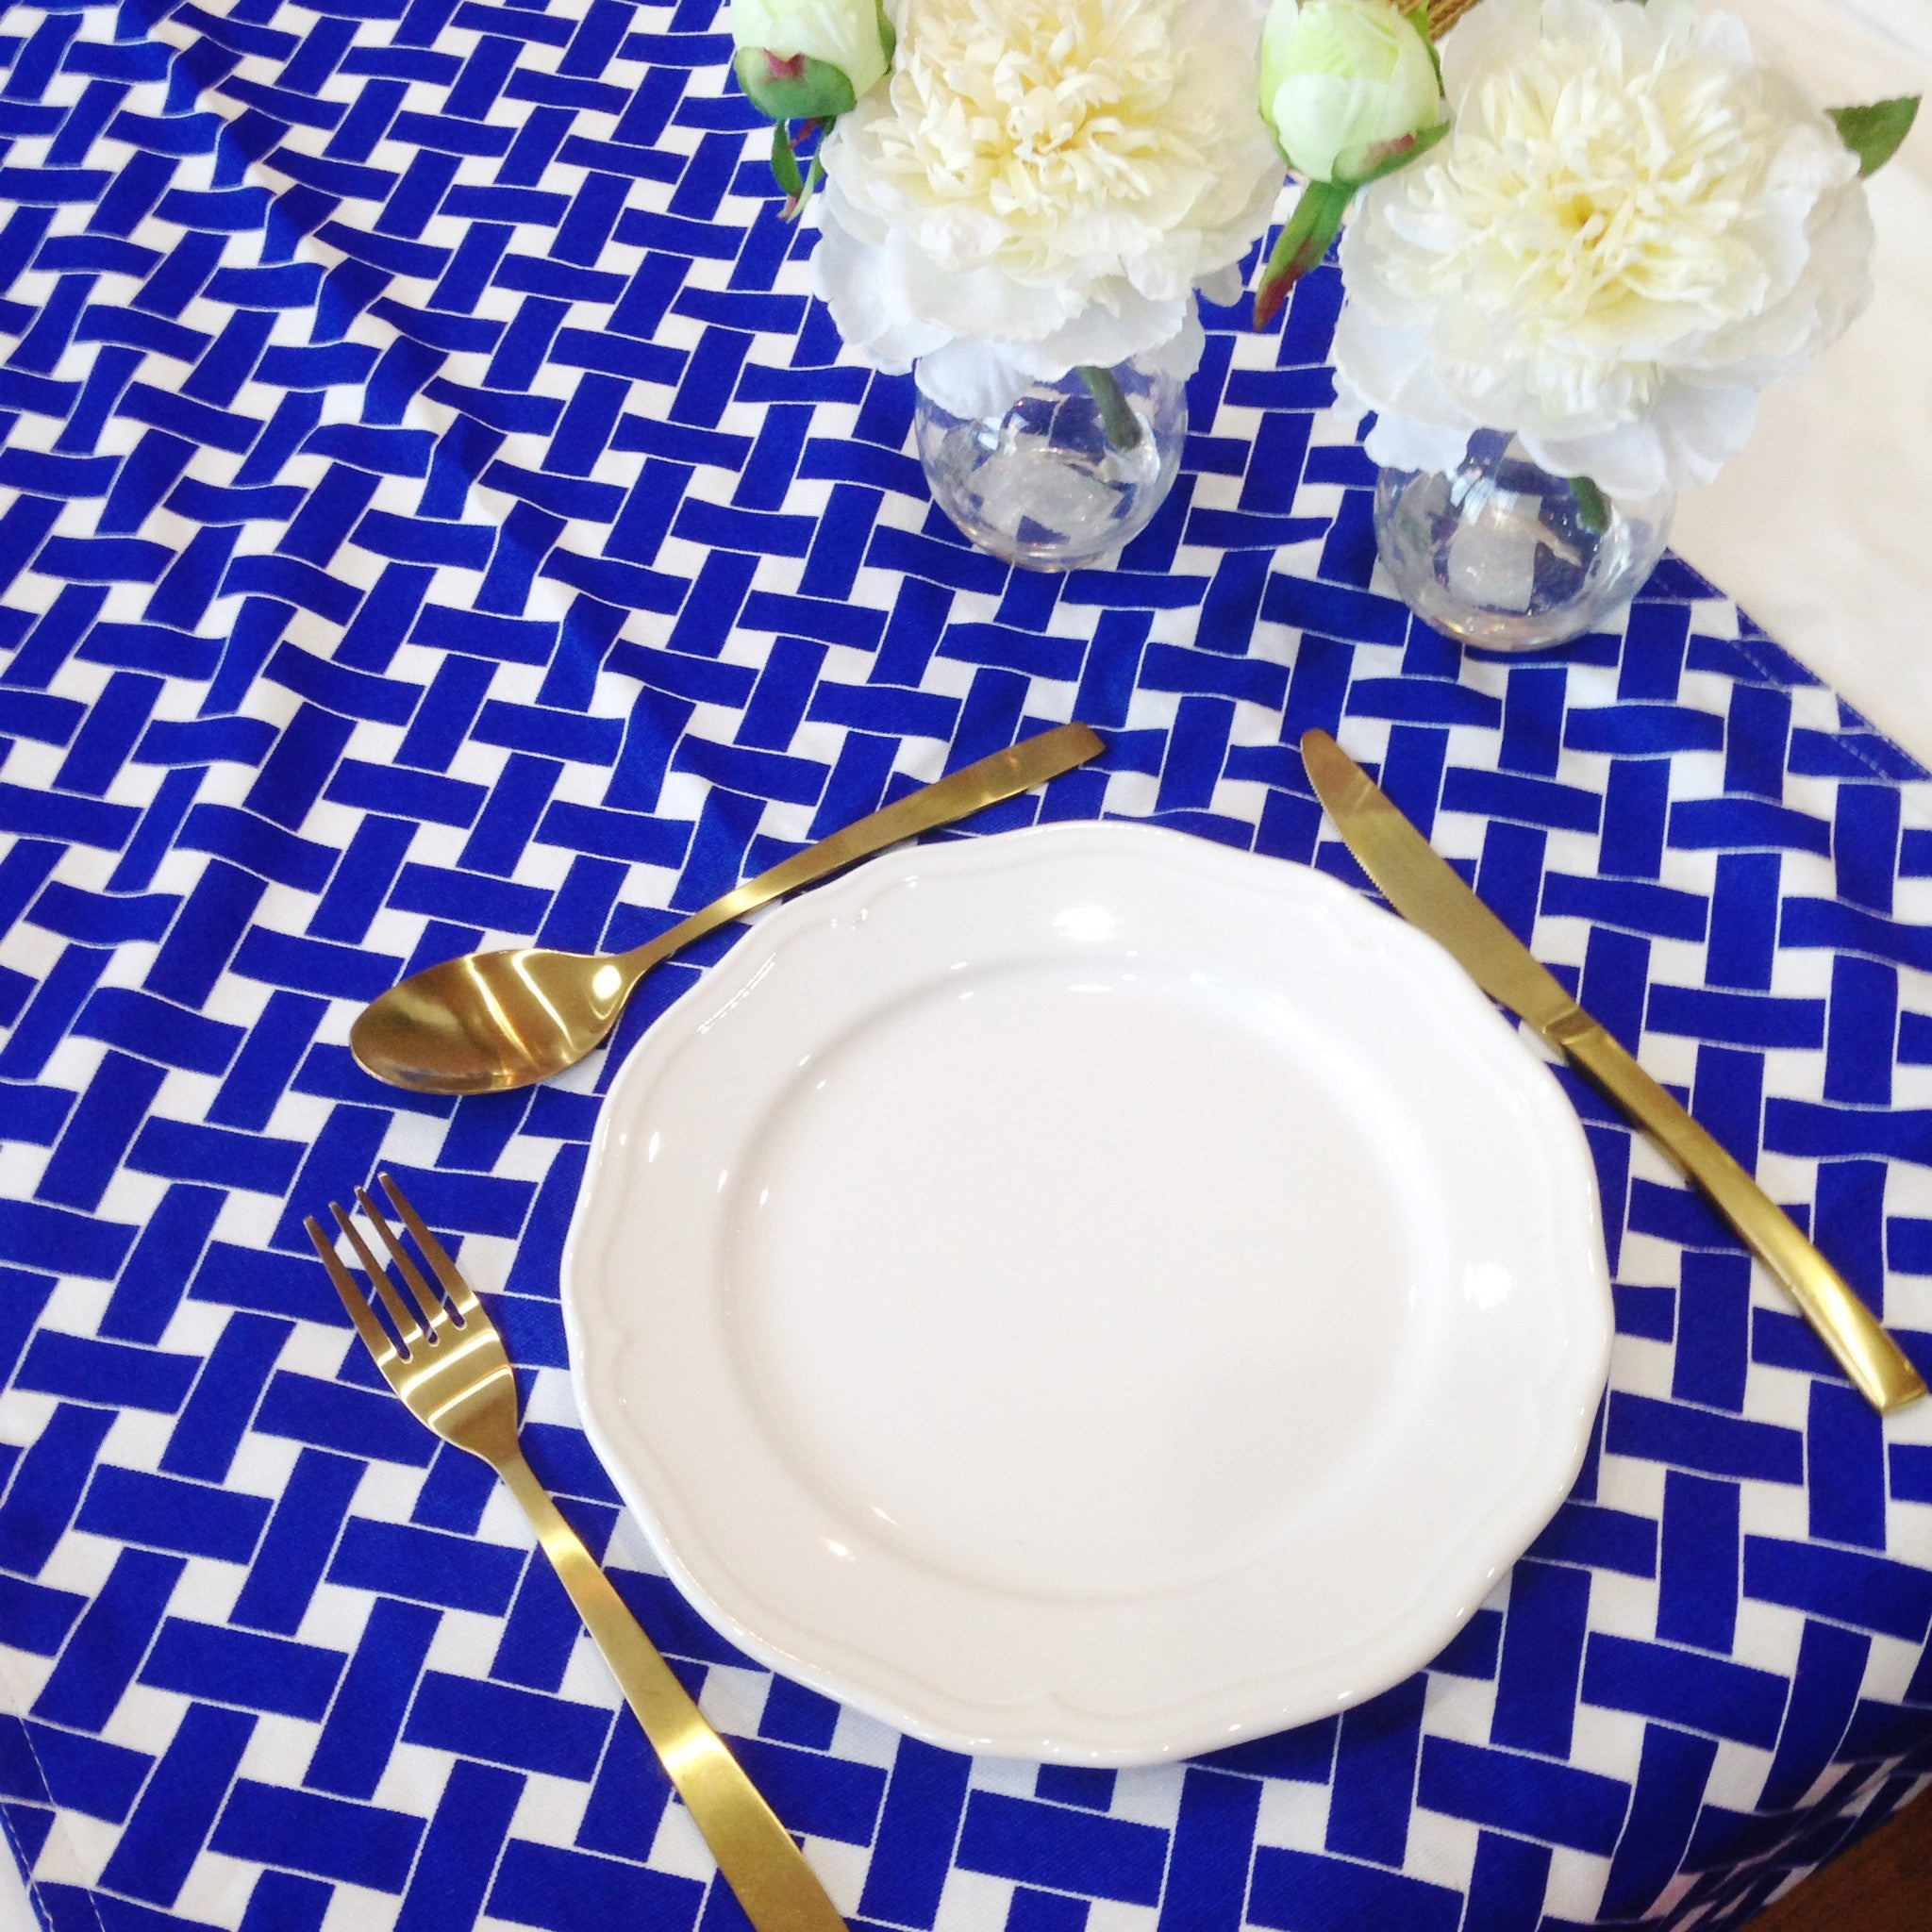 Blue / White Lattice Table Runner - The Sweet Hostess  - 1